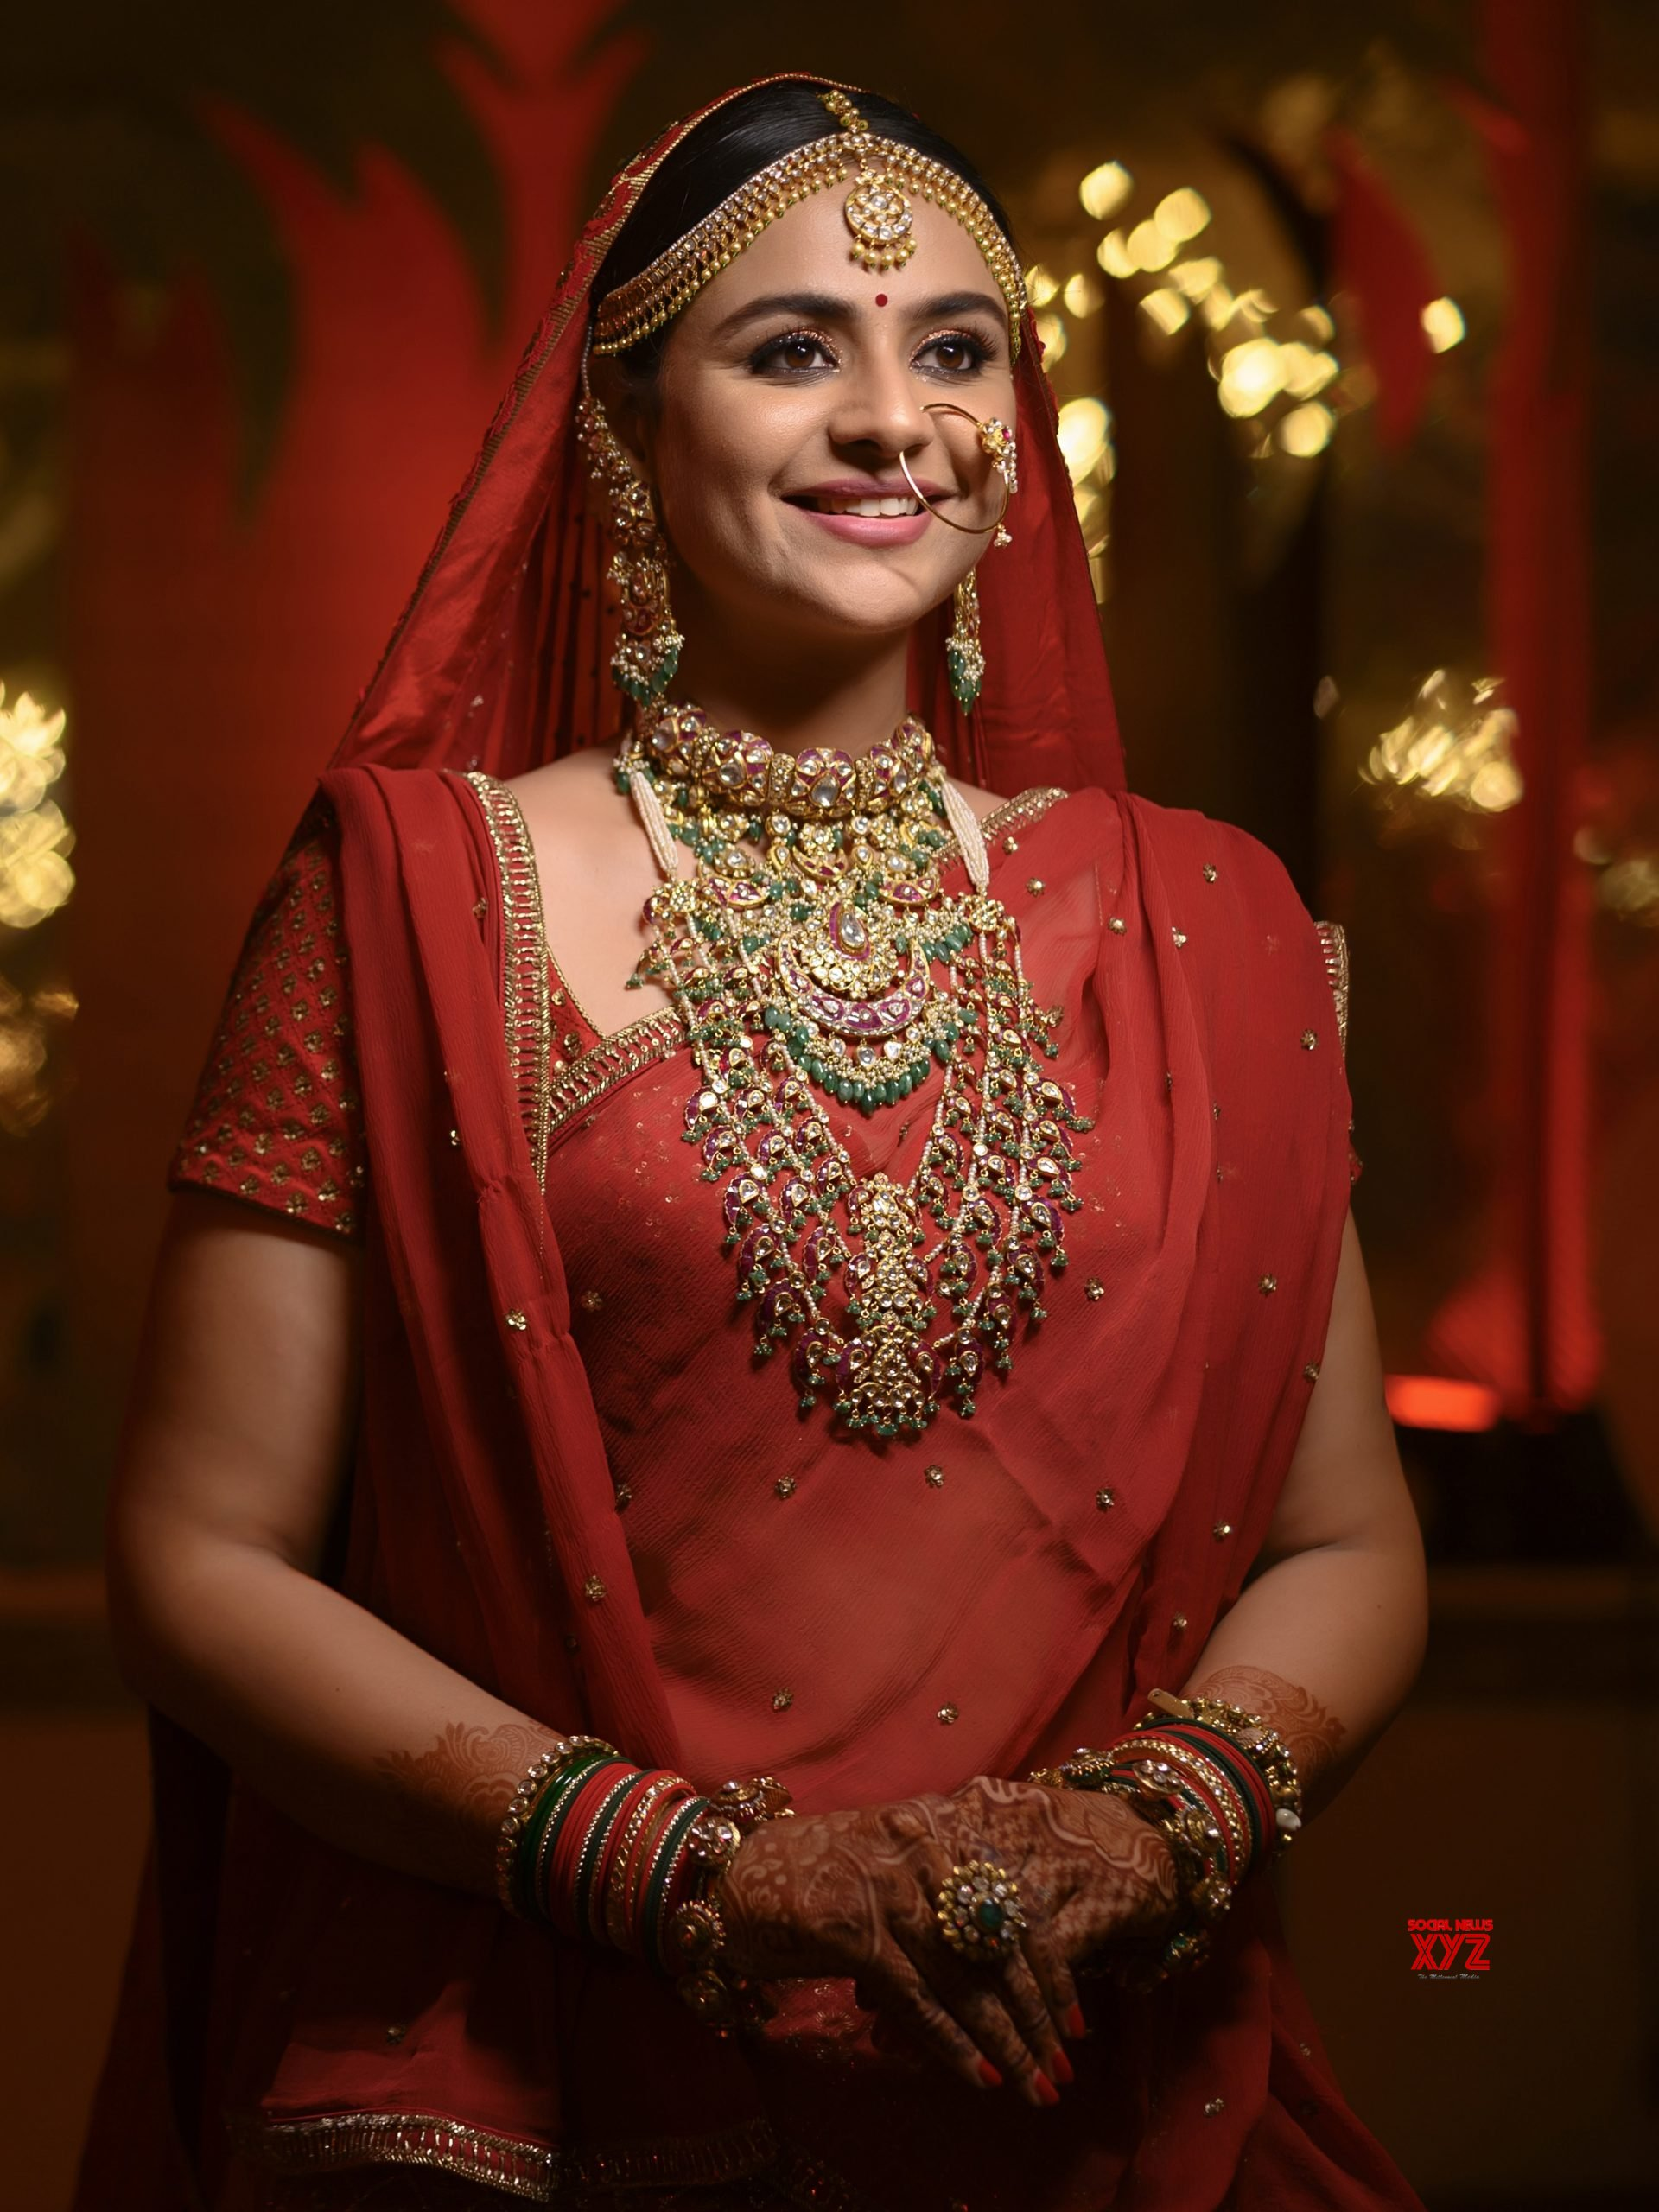 Actress Prachi Tehlan Chooses To Wear Designer Archana Aggarwal Timeless Jewellery On Her Wedding